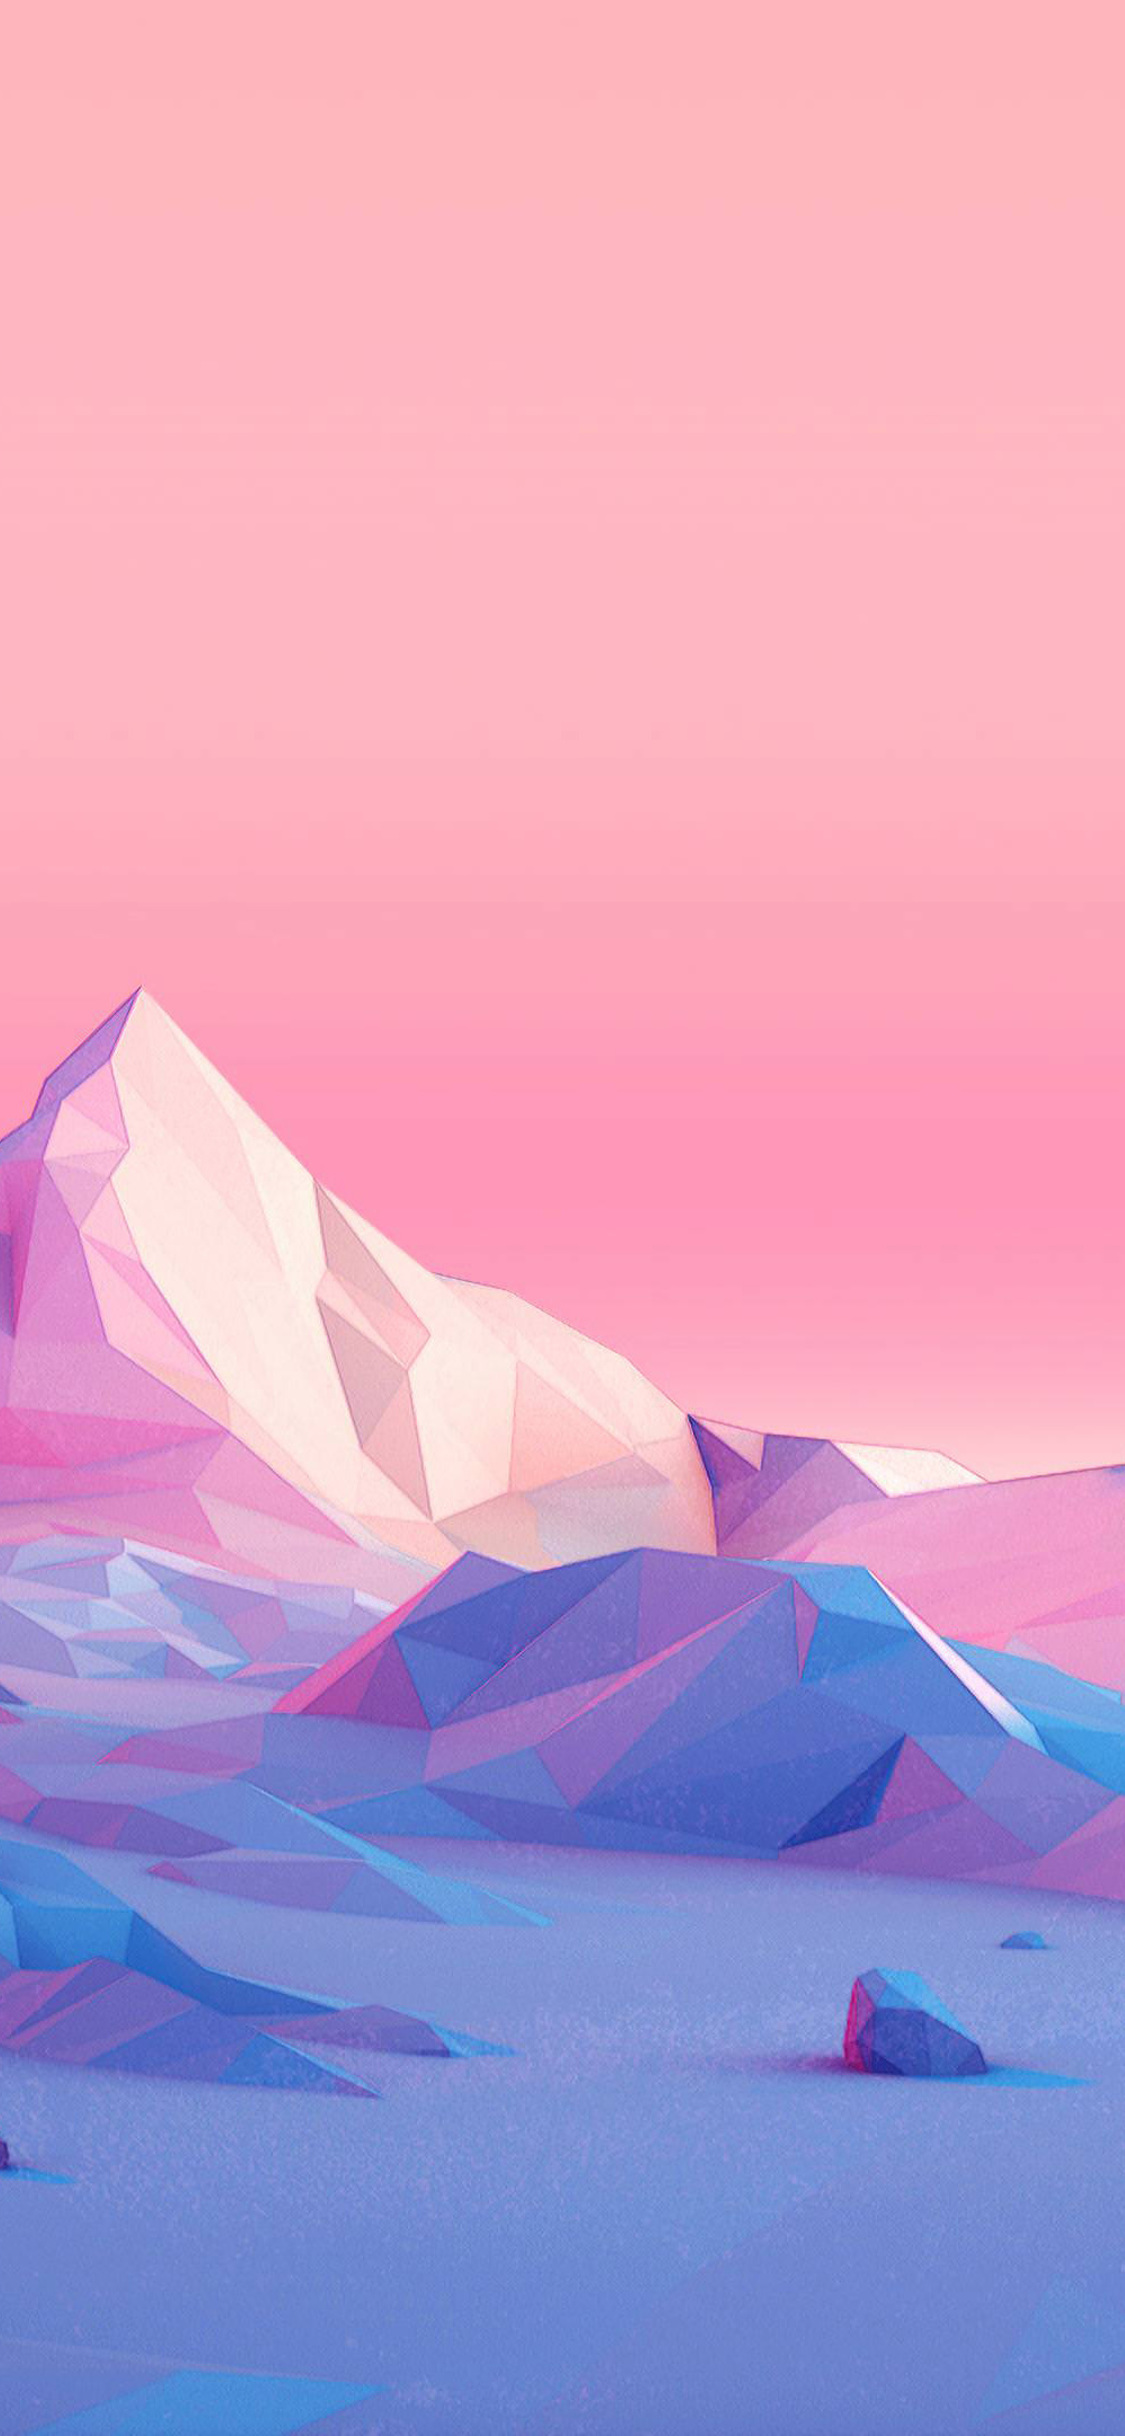 Cool selection of wallpapers for fans of minimalism